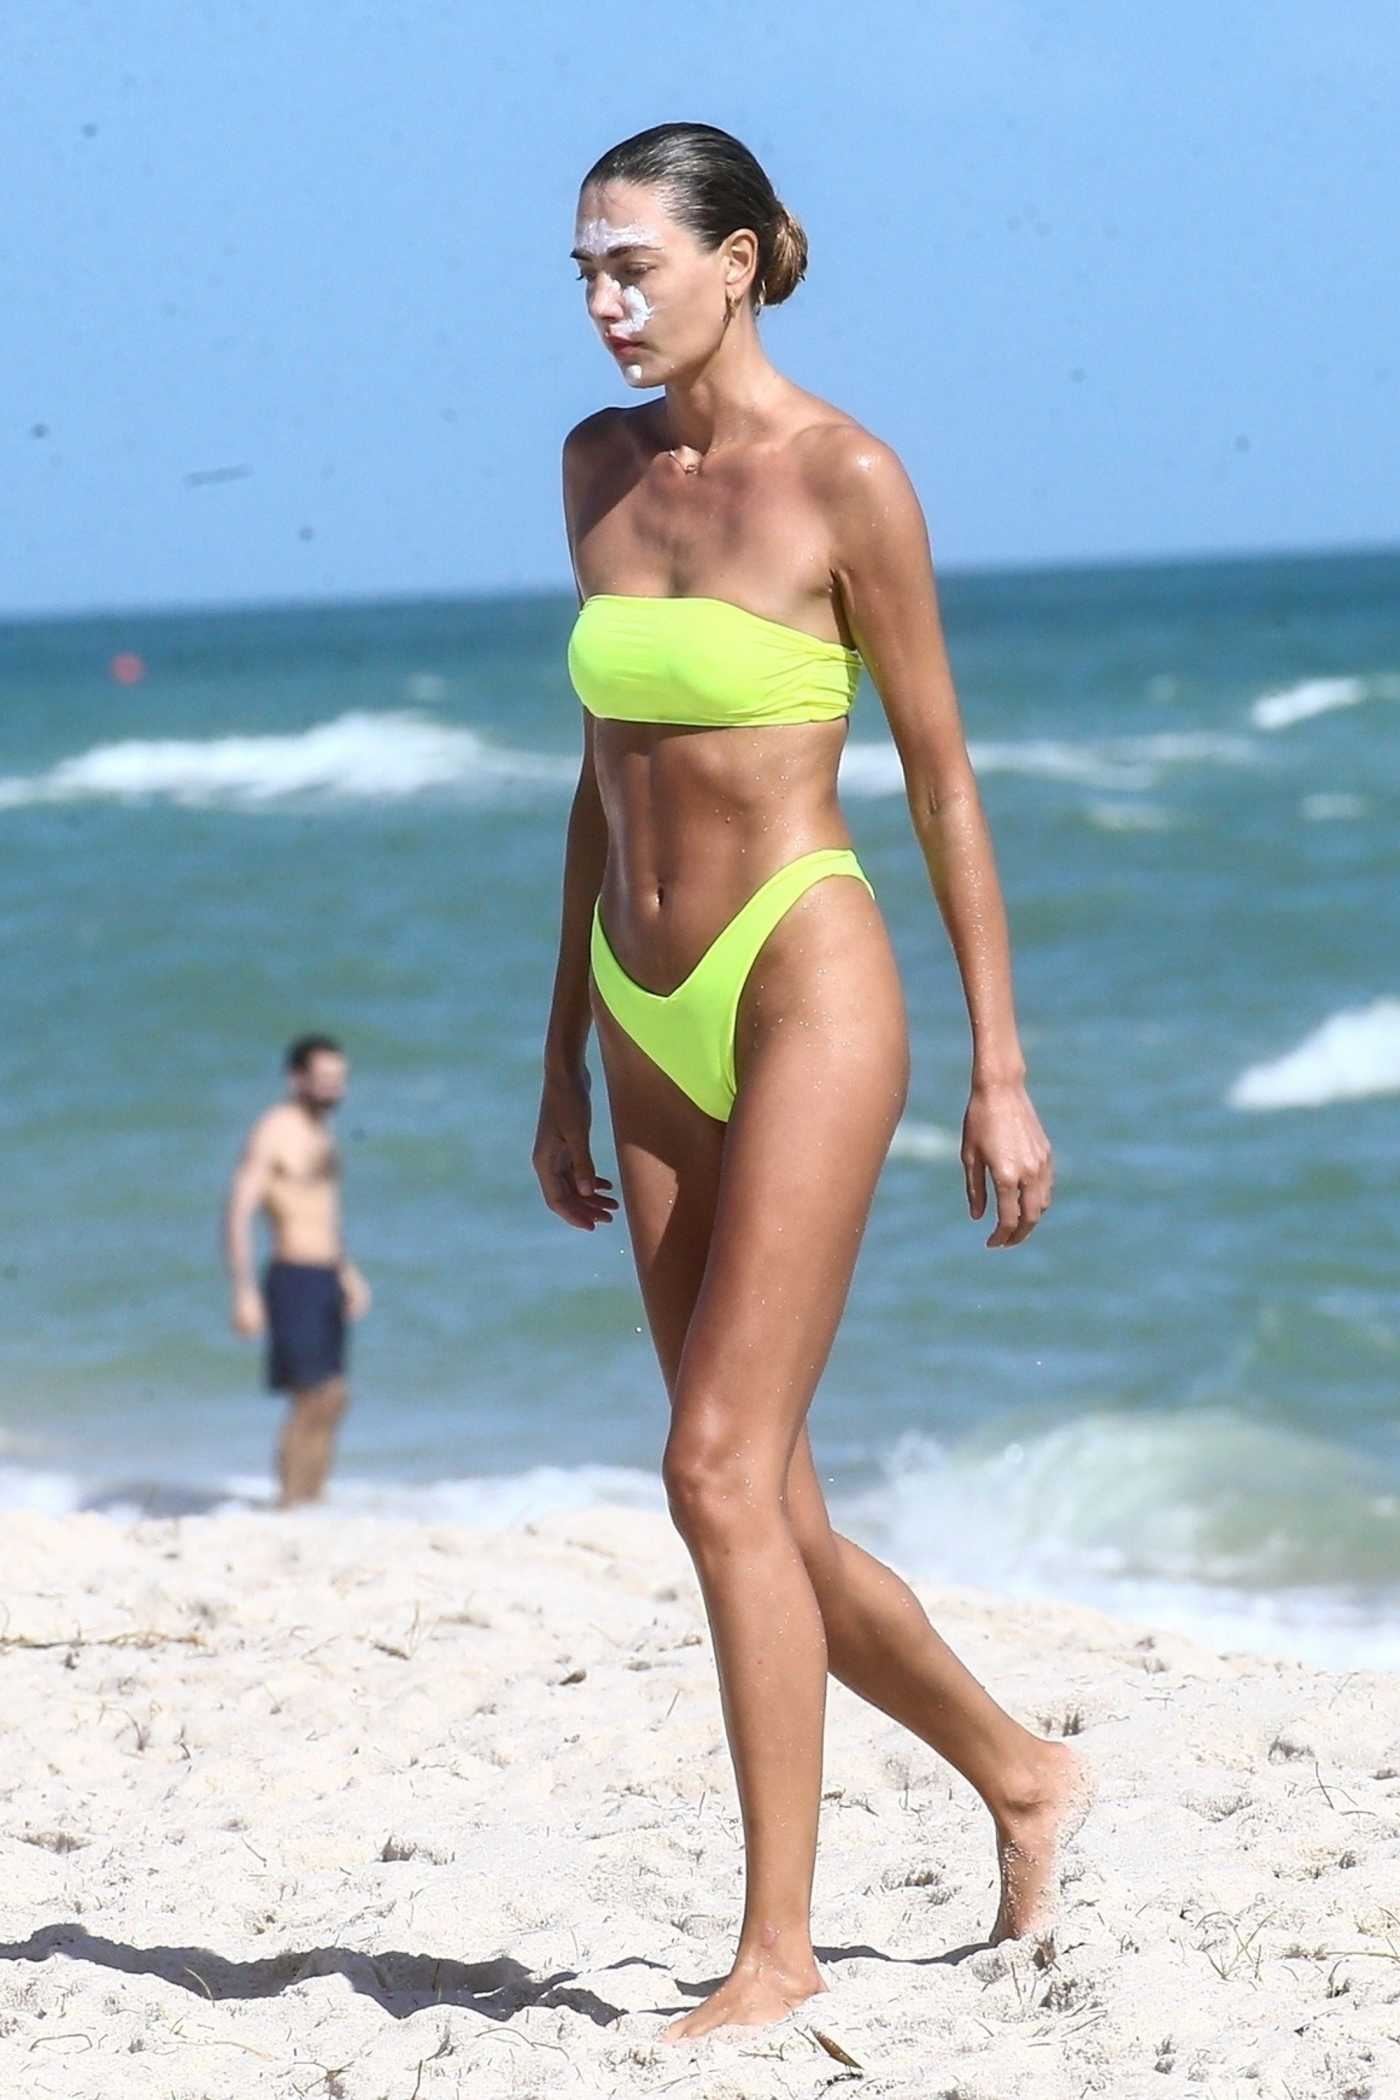 Alina Baikova in a Neon Green Bikini on the Beach in Miami 11/26/2020